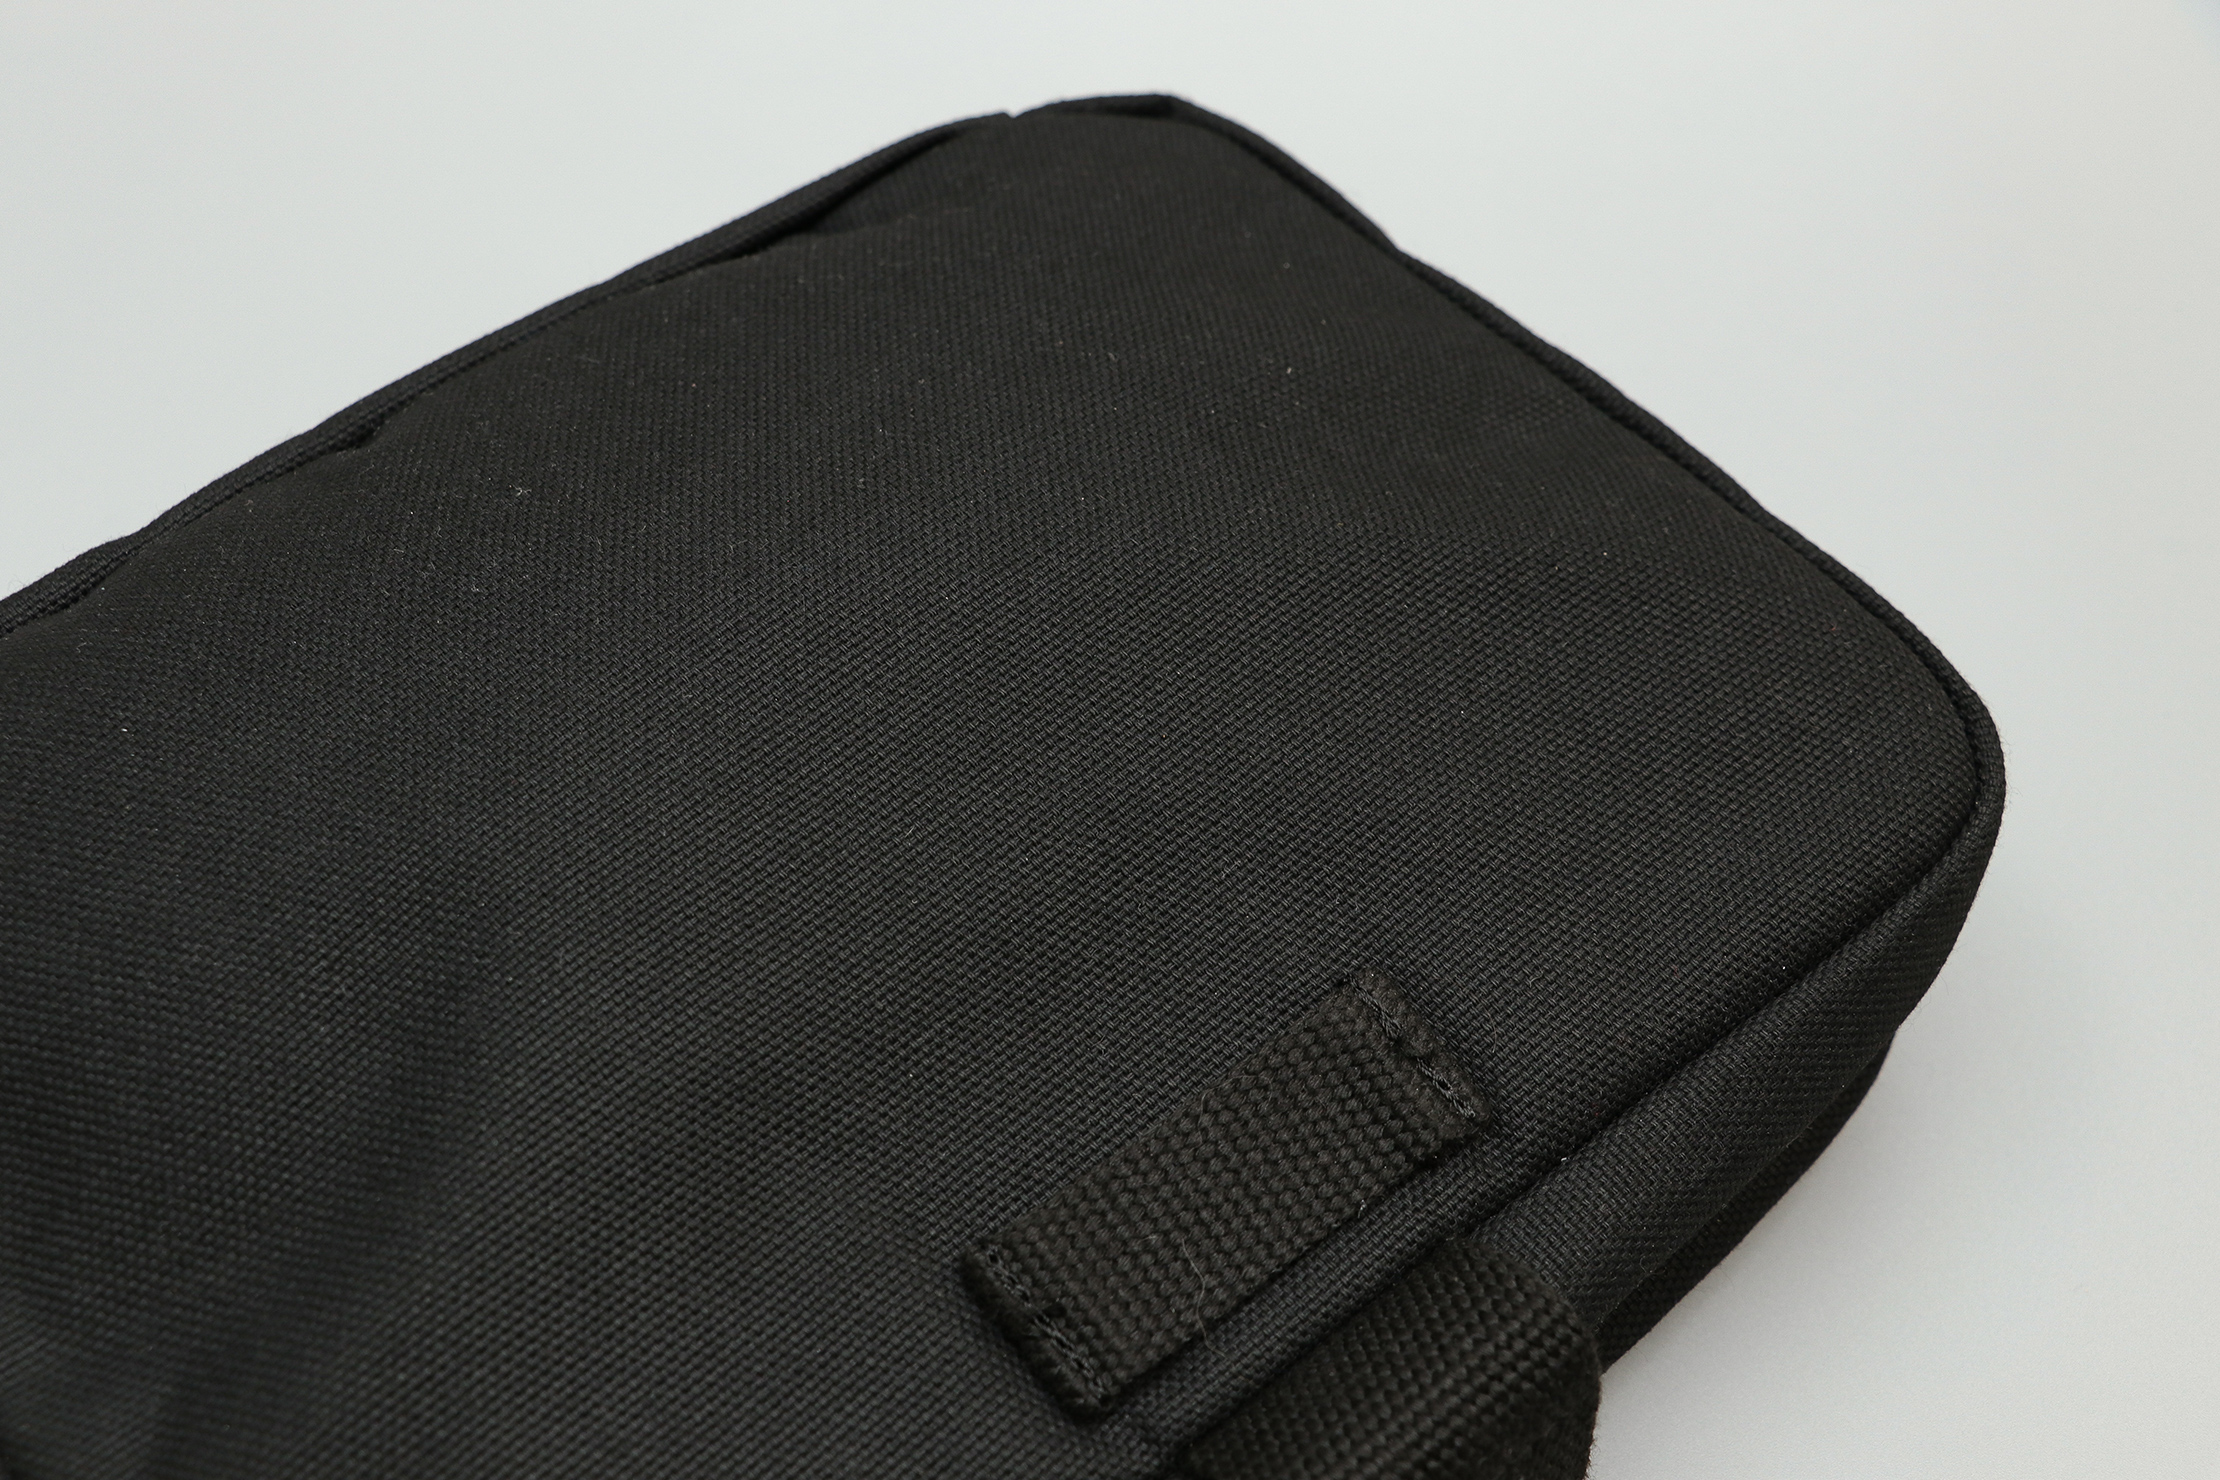 IKEA FORFINA Toiletry Bag Material